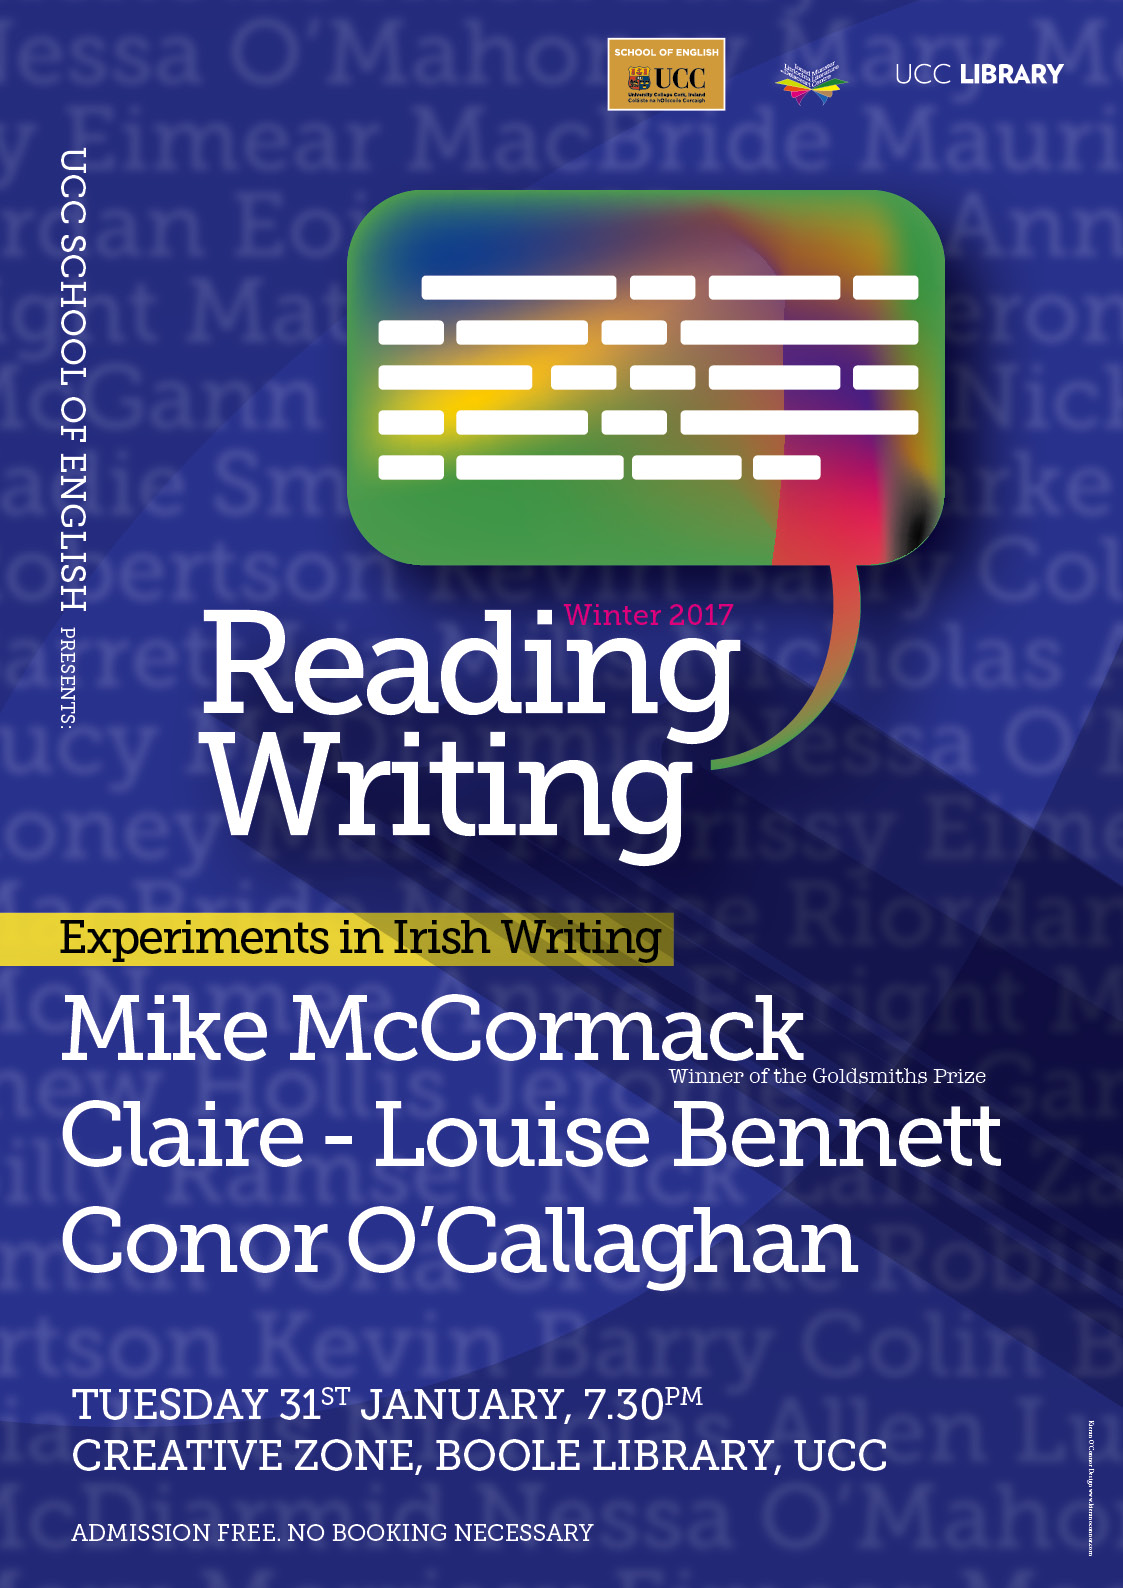 Join us for the second event of UCC's School of English reading series which will feature three of Ireland's most experimental writers.